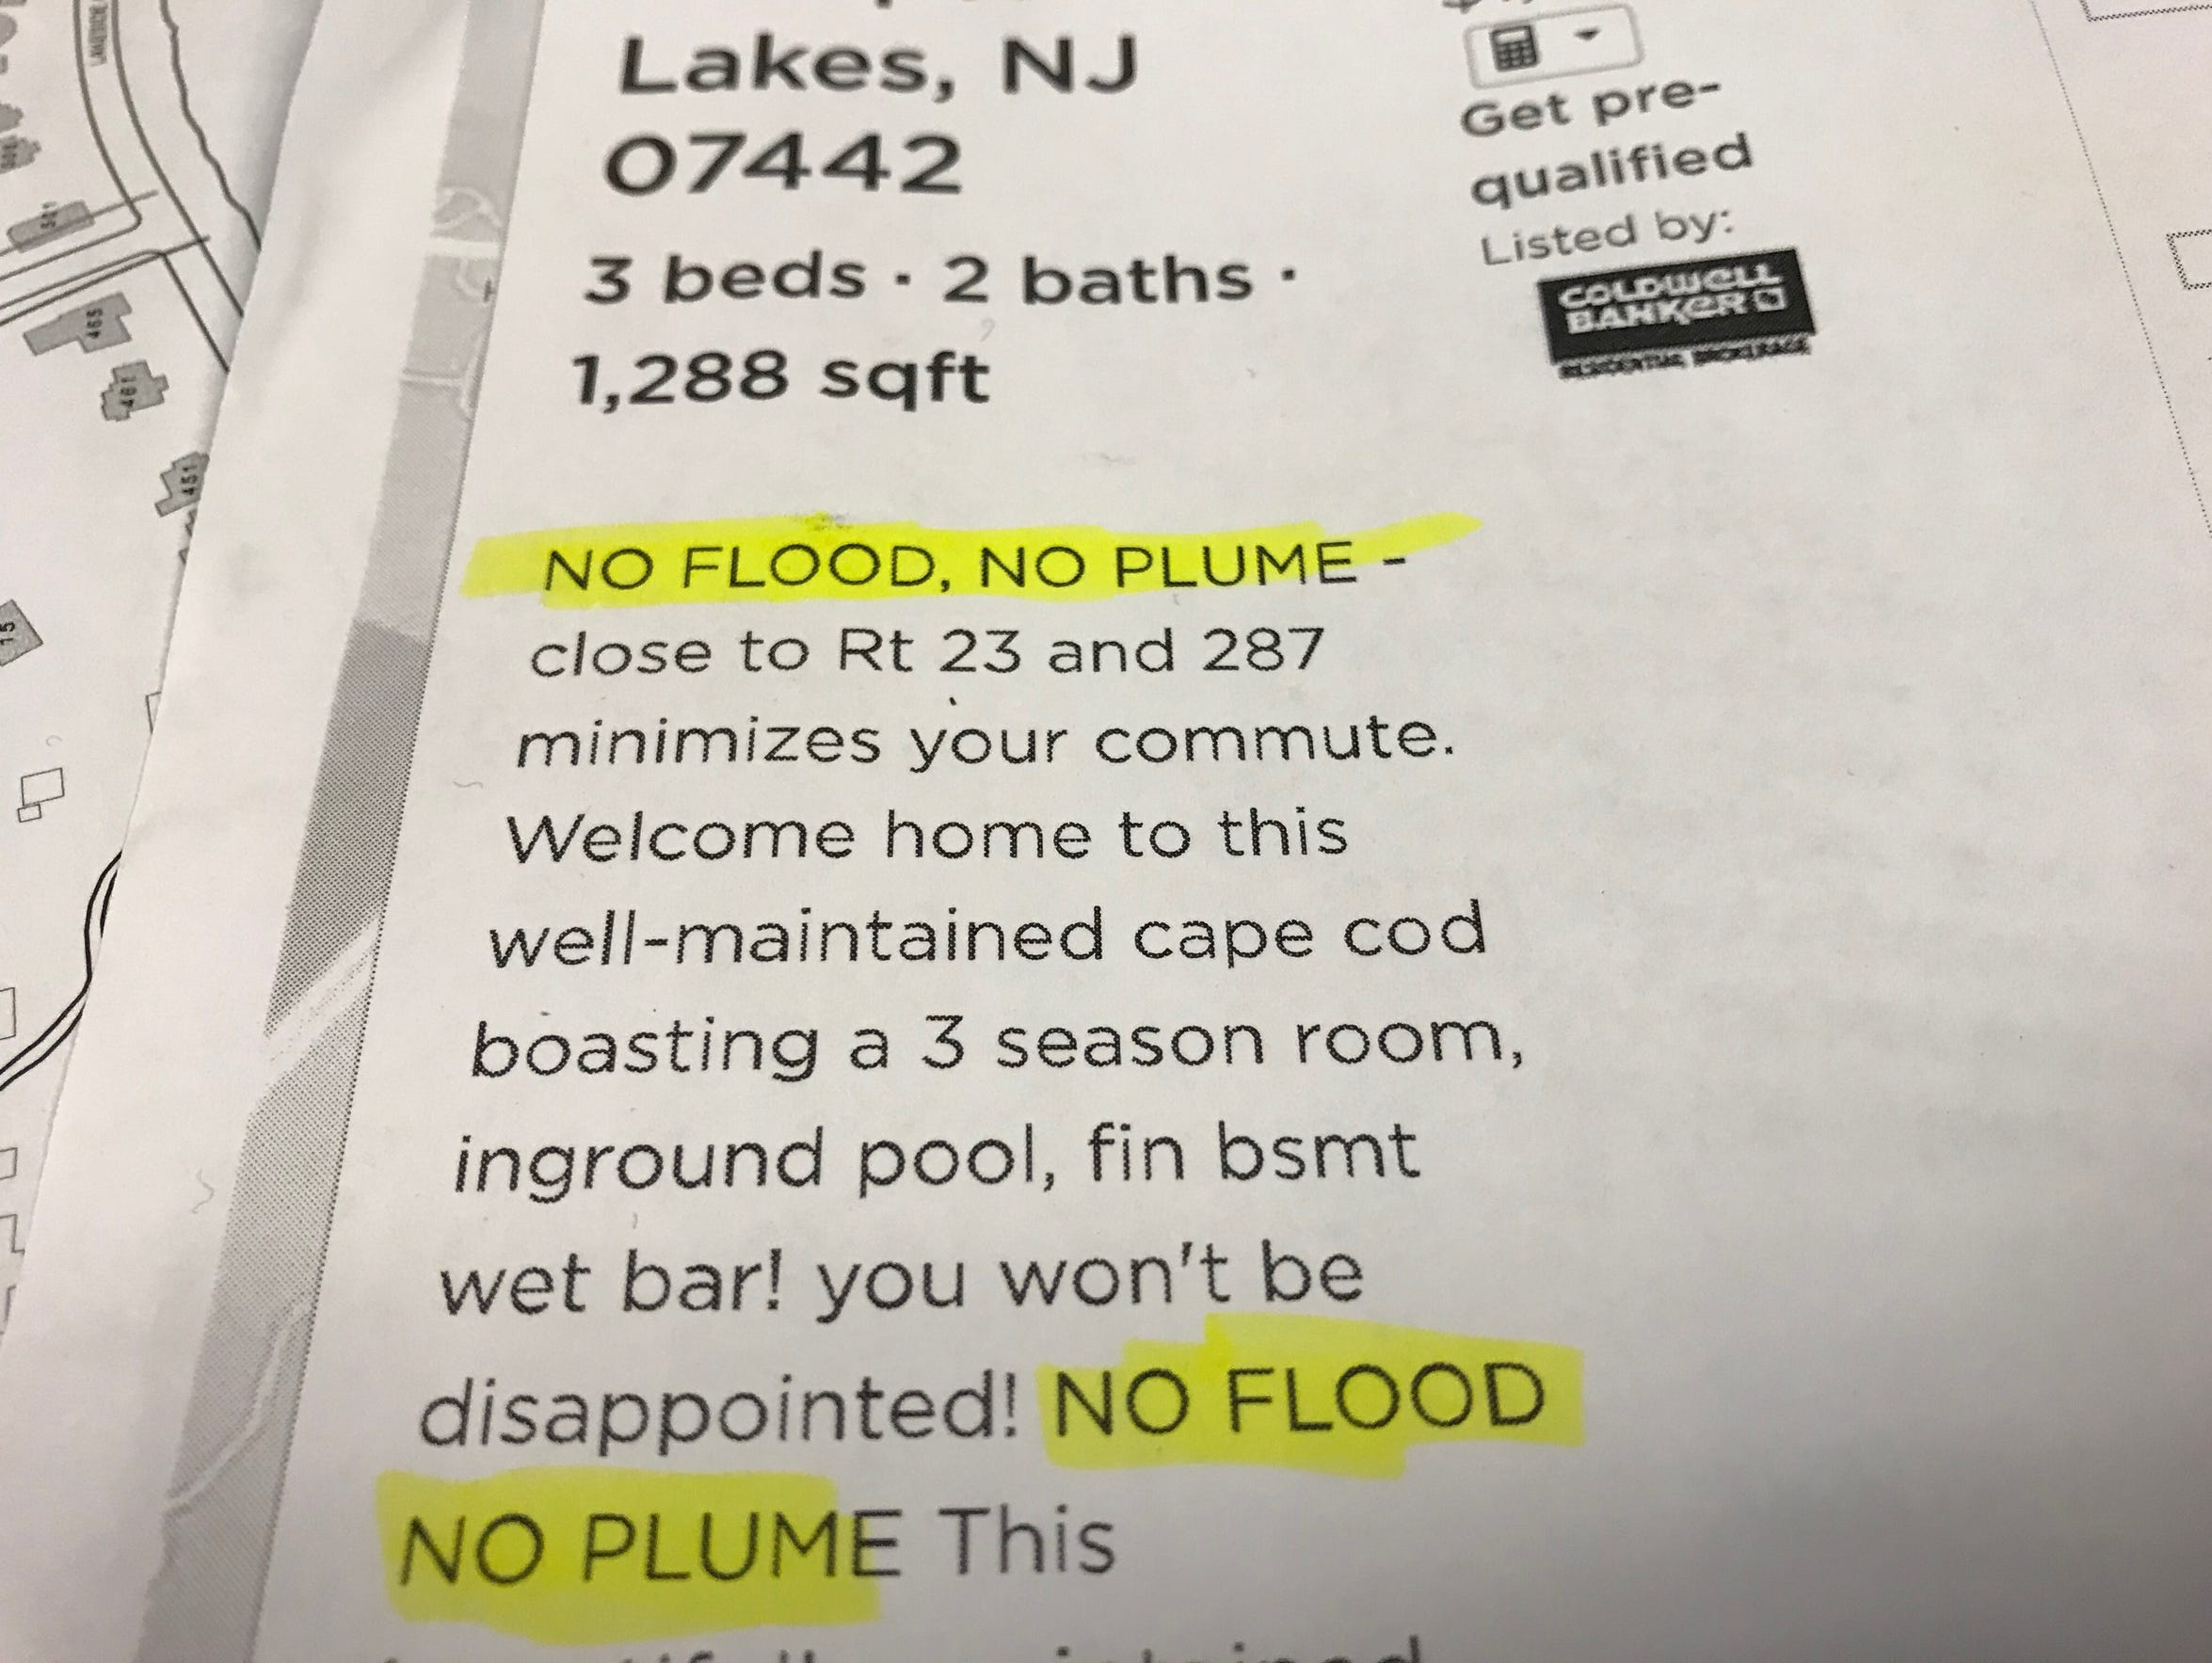 This is a recent real estate ad for a Pompton Lakes